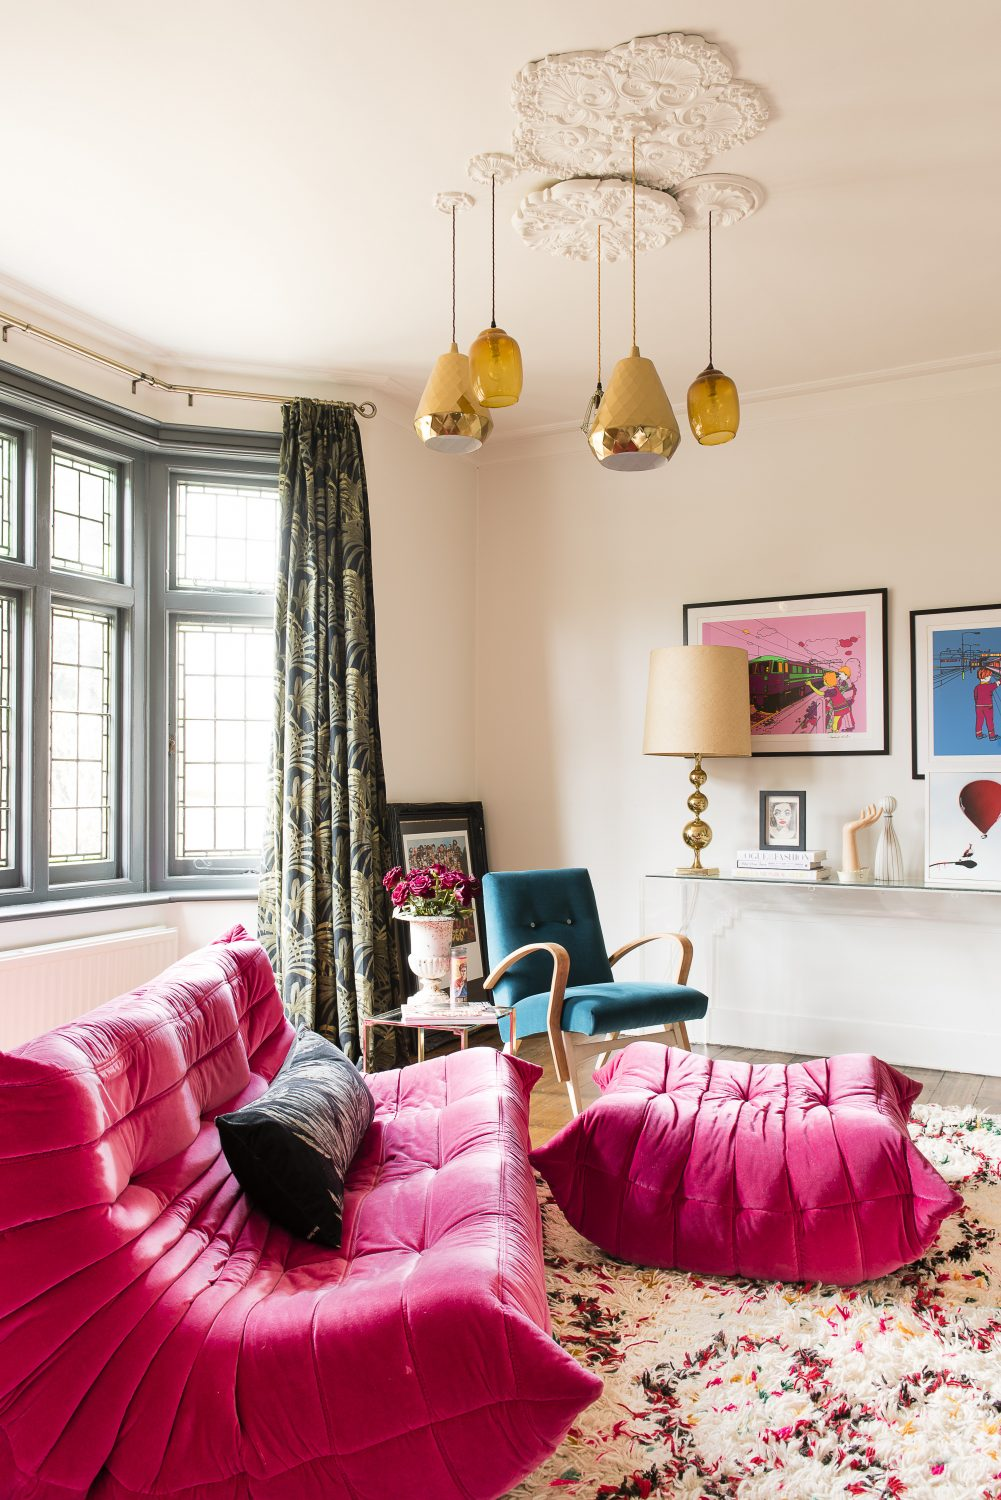 The second snug is dominated by a comfy Ligne Roset Togo sofa with matching ottoman